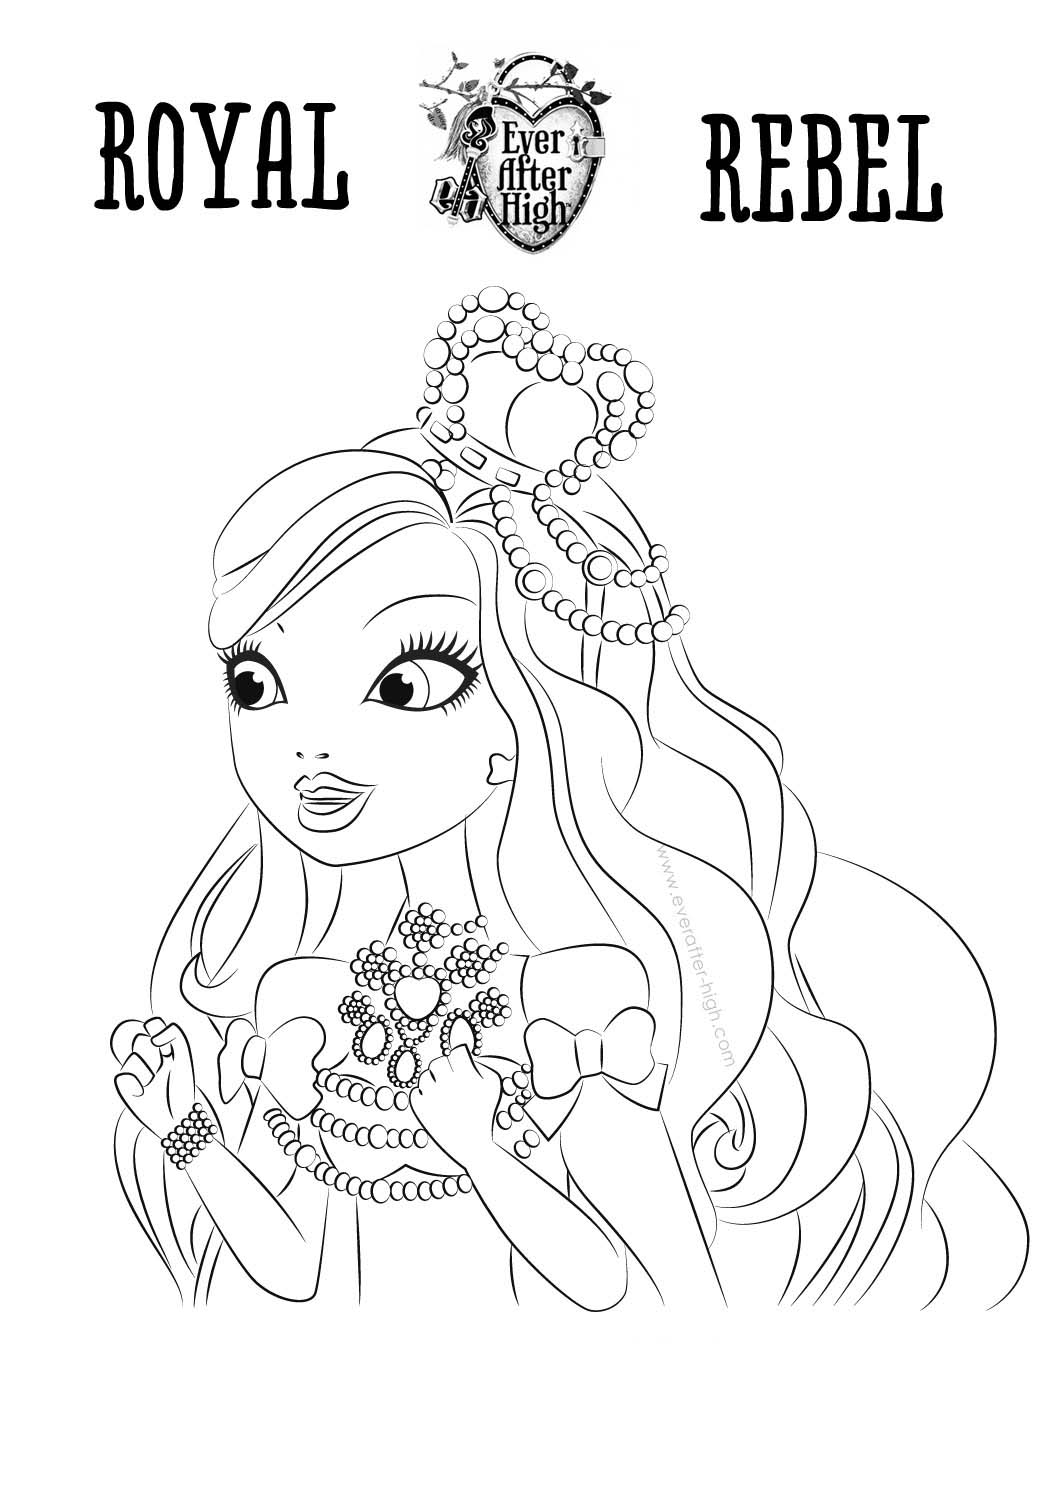 imagenes para colorear de ever after high